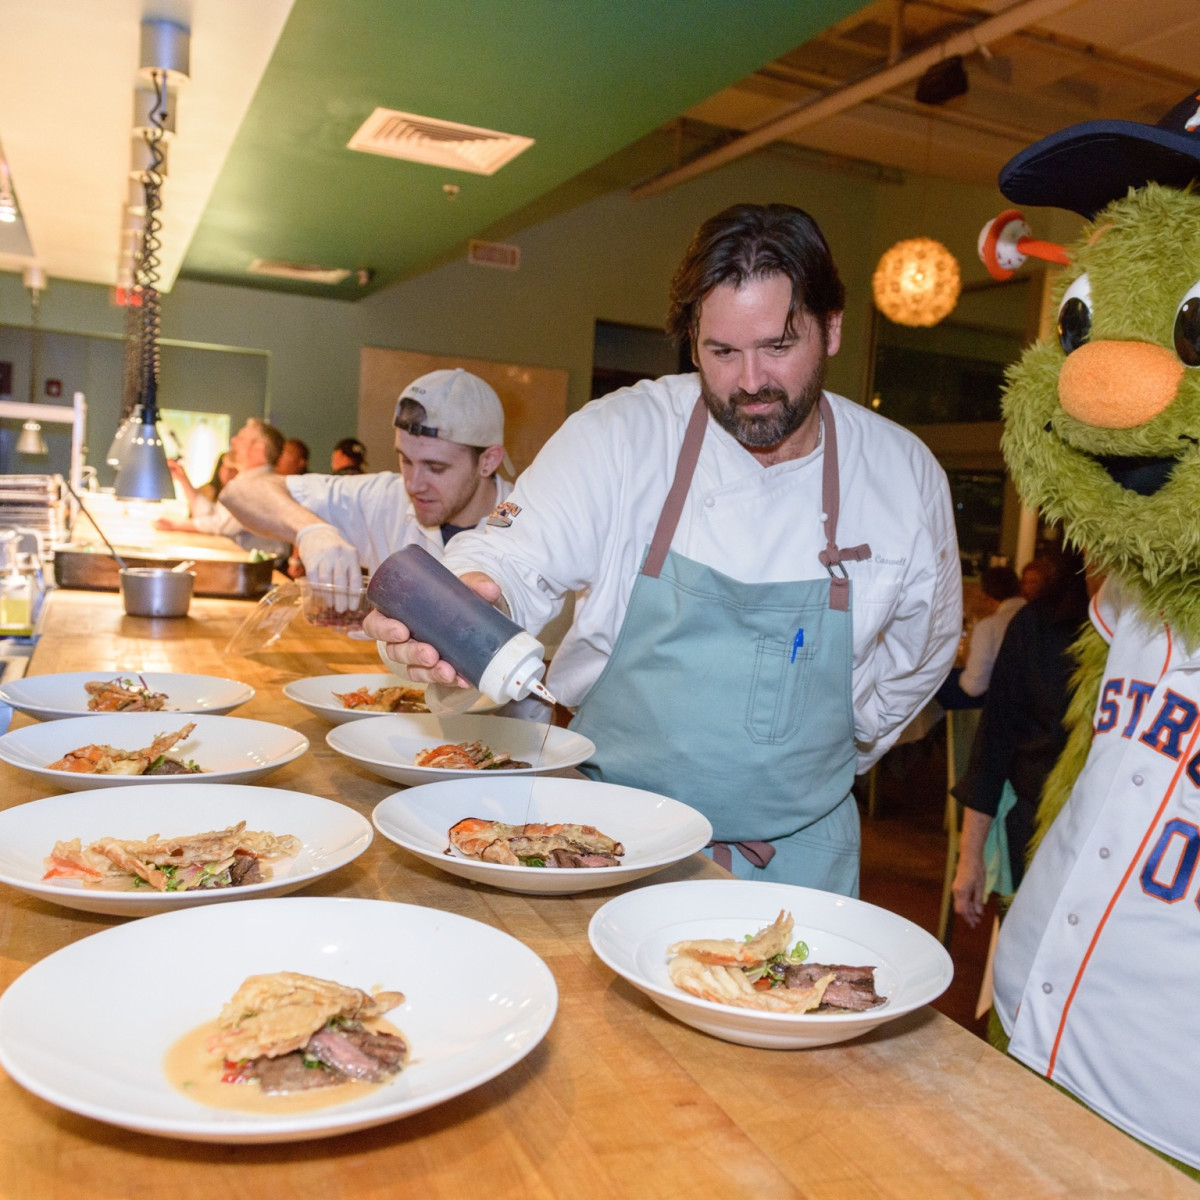 Salty Supper Bryan Caswell Houston Astros Orbit